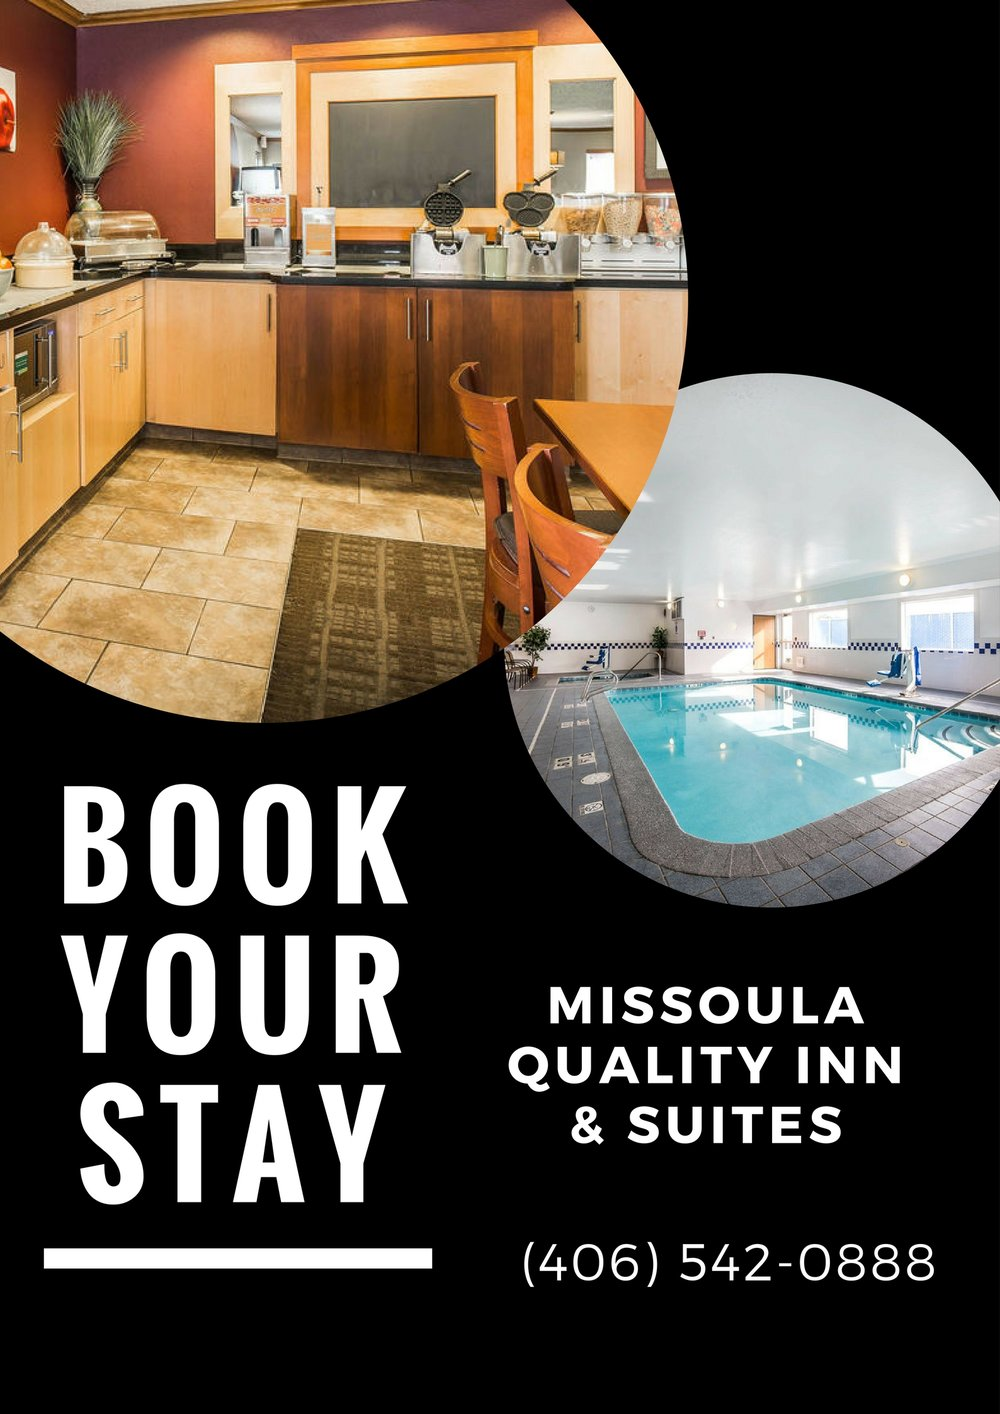 Sample of work for Missoula Quality Inn Client located in Missoula, MT